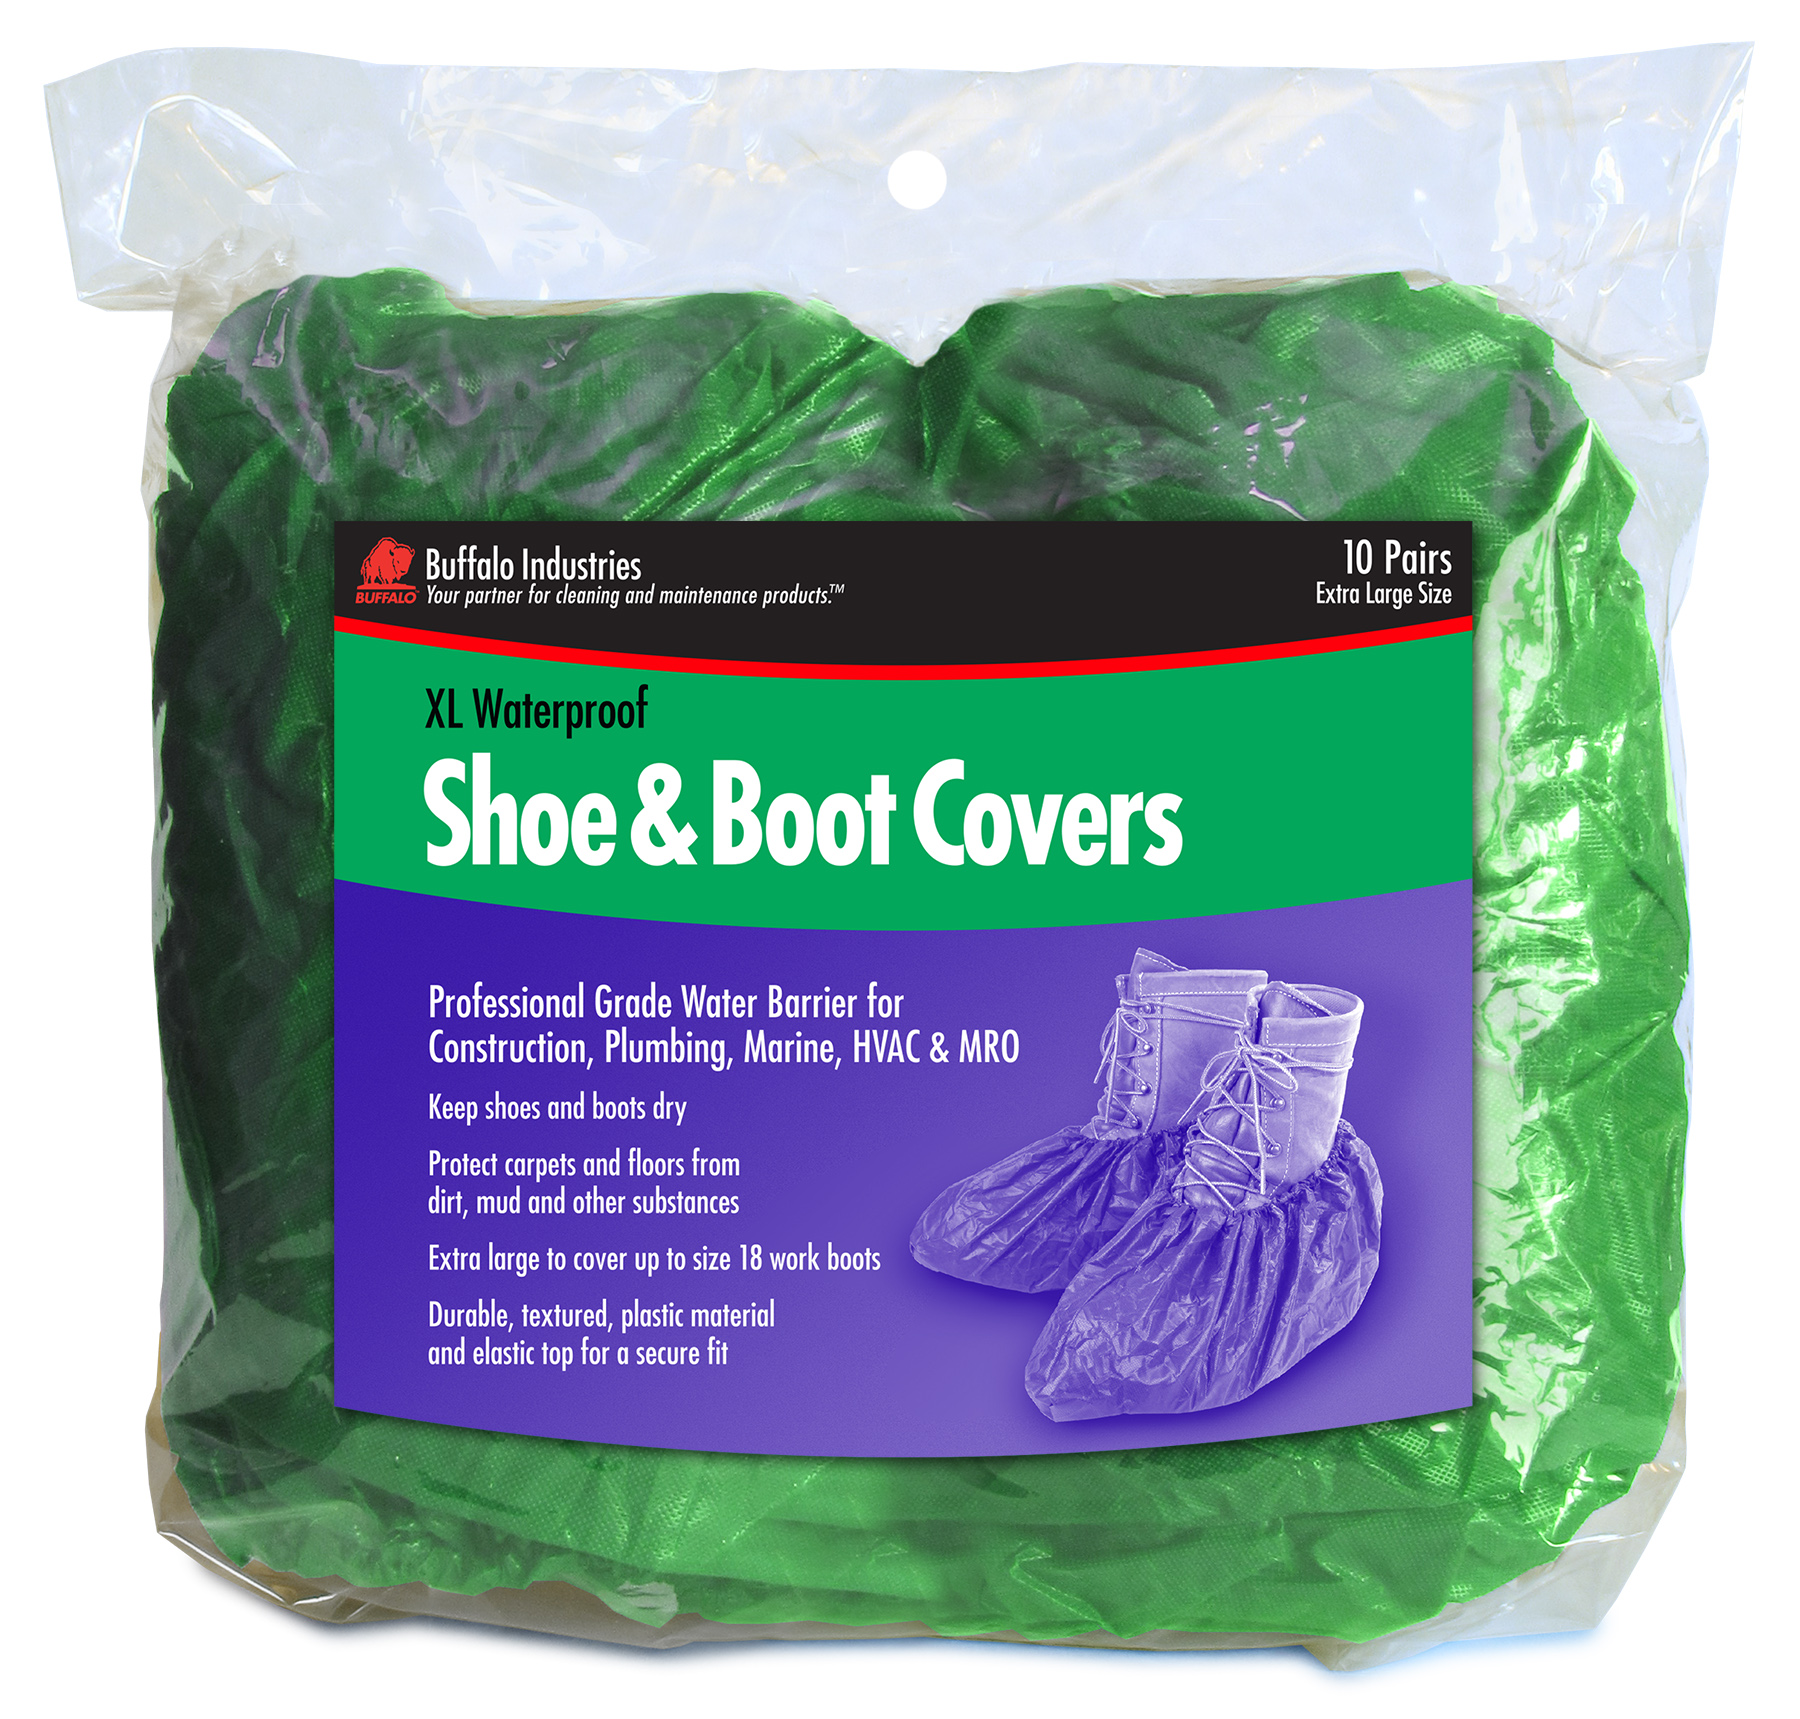 xl waterproof shoe and boot covers